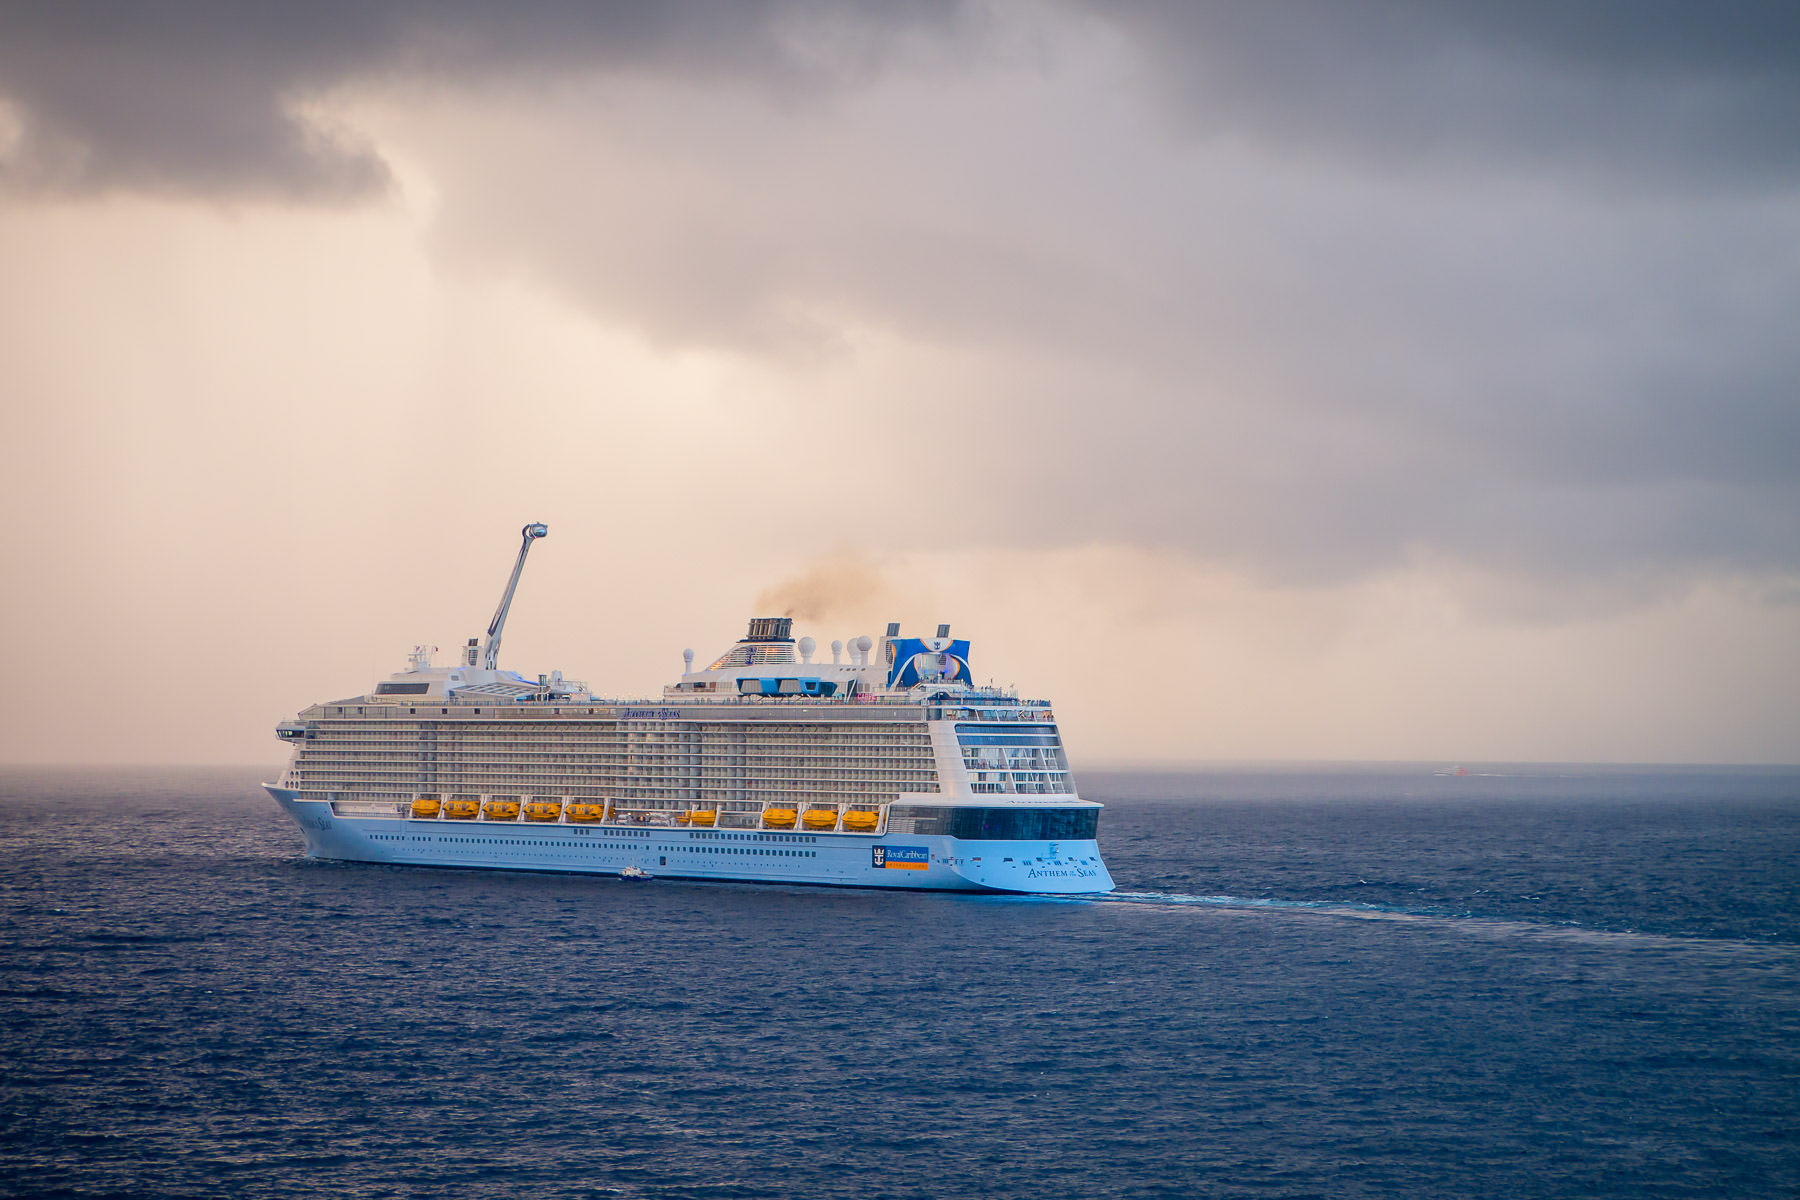 The cruise ship Anthem of the Seas departs Cozumel, Mexico, on a hazy, stormy day.